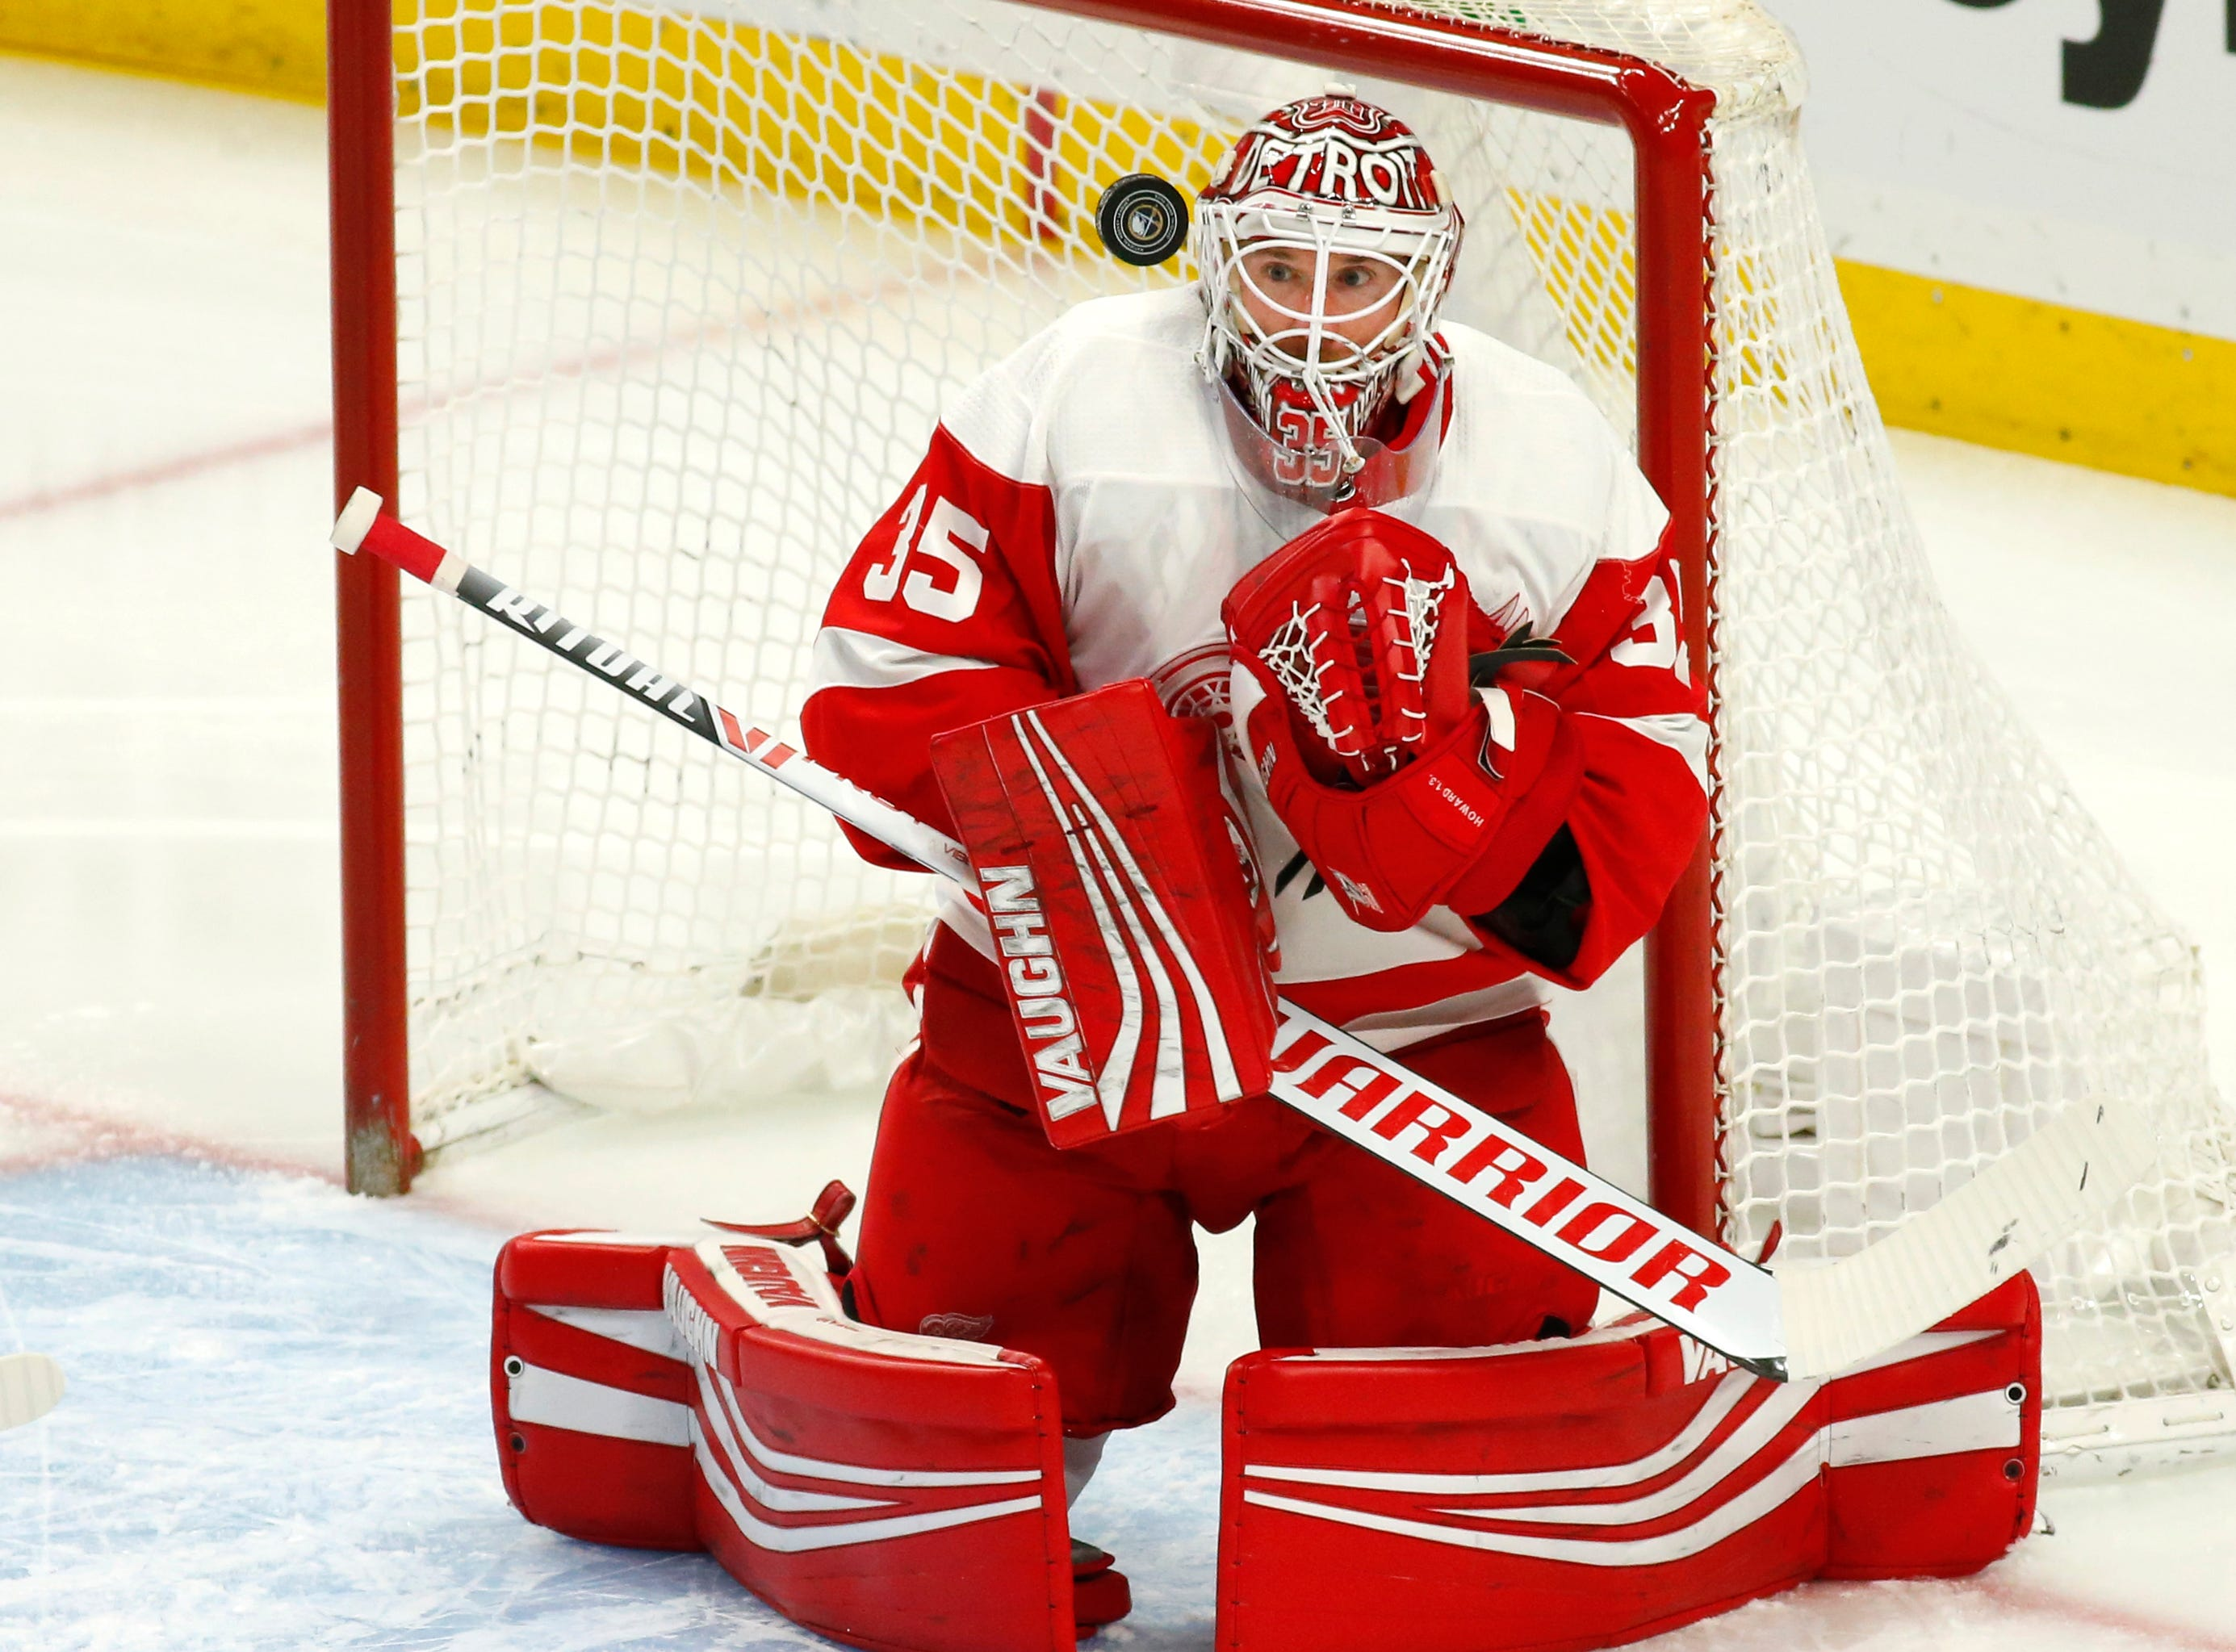 Detroit Red Wings goalie Jimmy Howard (35) makes a save during the first period of an NHL hockey game against the Buffalo Sabres, Saturday, Feb. 9, 2019, in Buffalo N.Y. (AP Photo/Jeffrey T. Barnes)